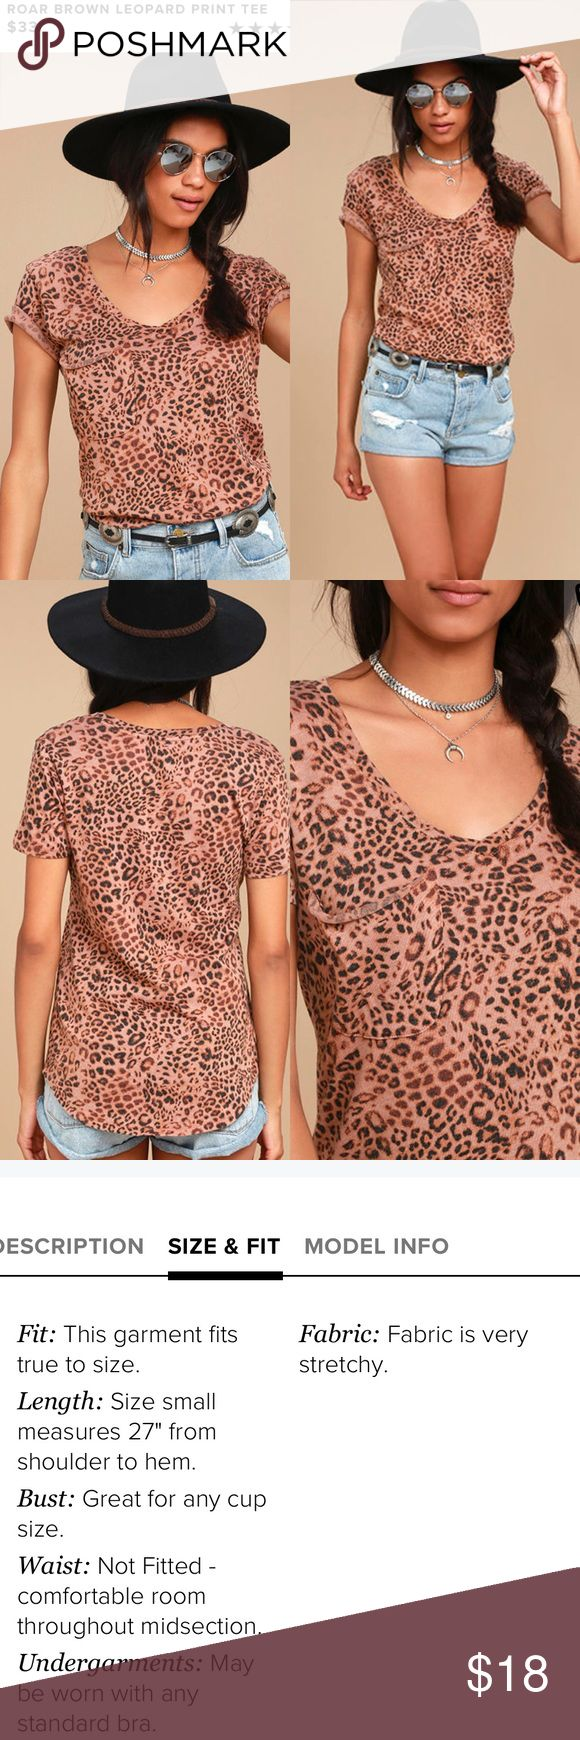 Brown Leopard Print Tee You'll be the queen of the jungle with the Roar Brown Leopard Print Tee! Soft cotton-blend knit has a classic leopard print and worn-in look across short sleeves and a V-neckline. Slouchy patch pocket accents the relaxed bodice with rounded hem. Unlined. 52% Cotton, 40% Polyester, 8% Rayon. Machine Wash Cold. Imported. Z Supply Tops